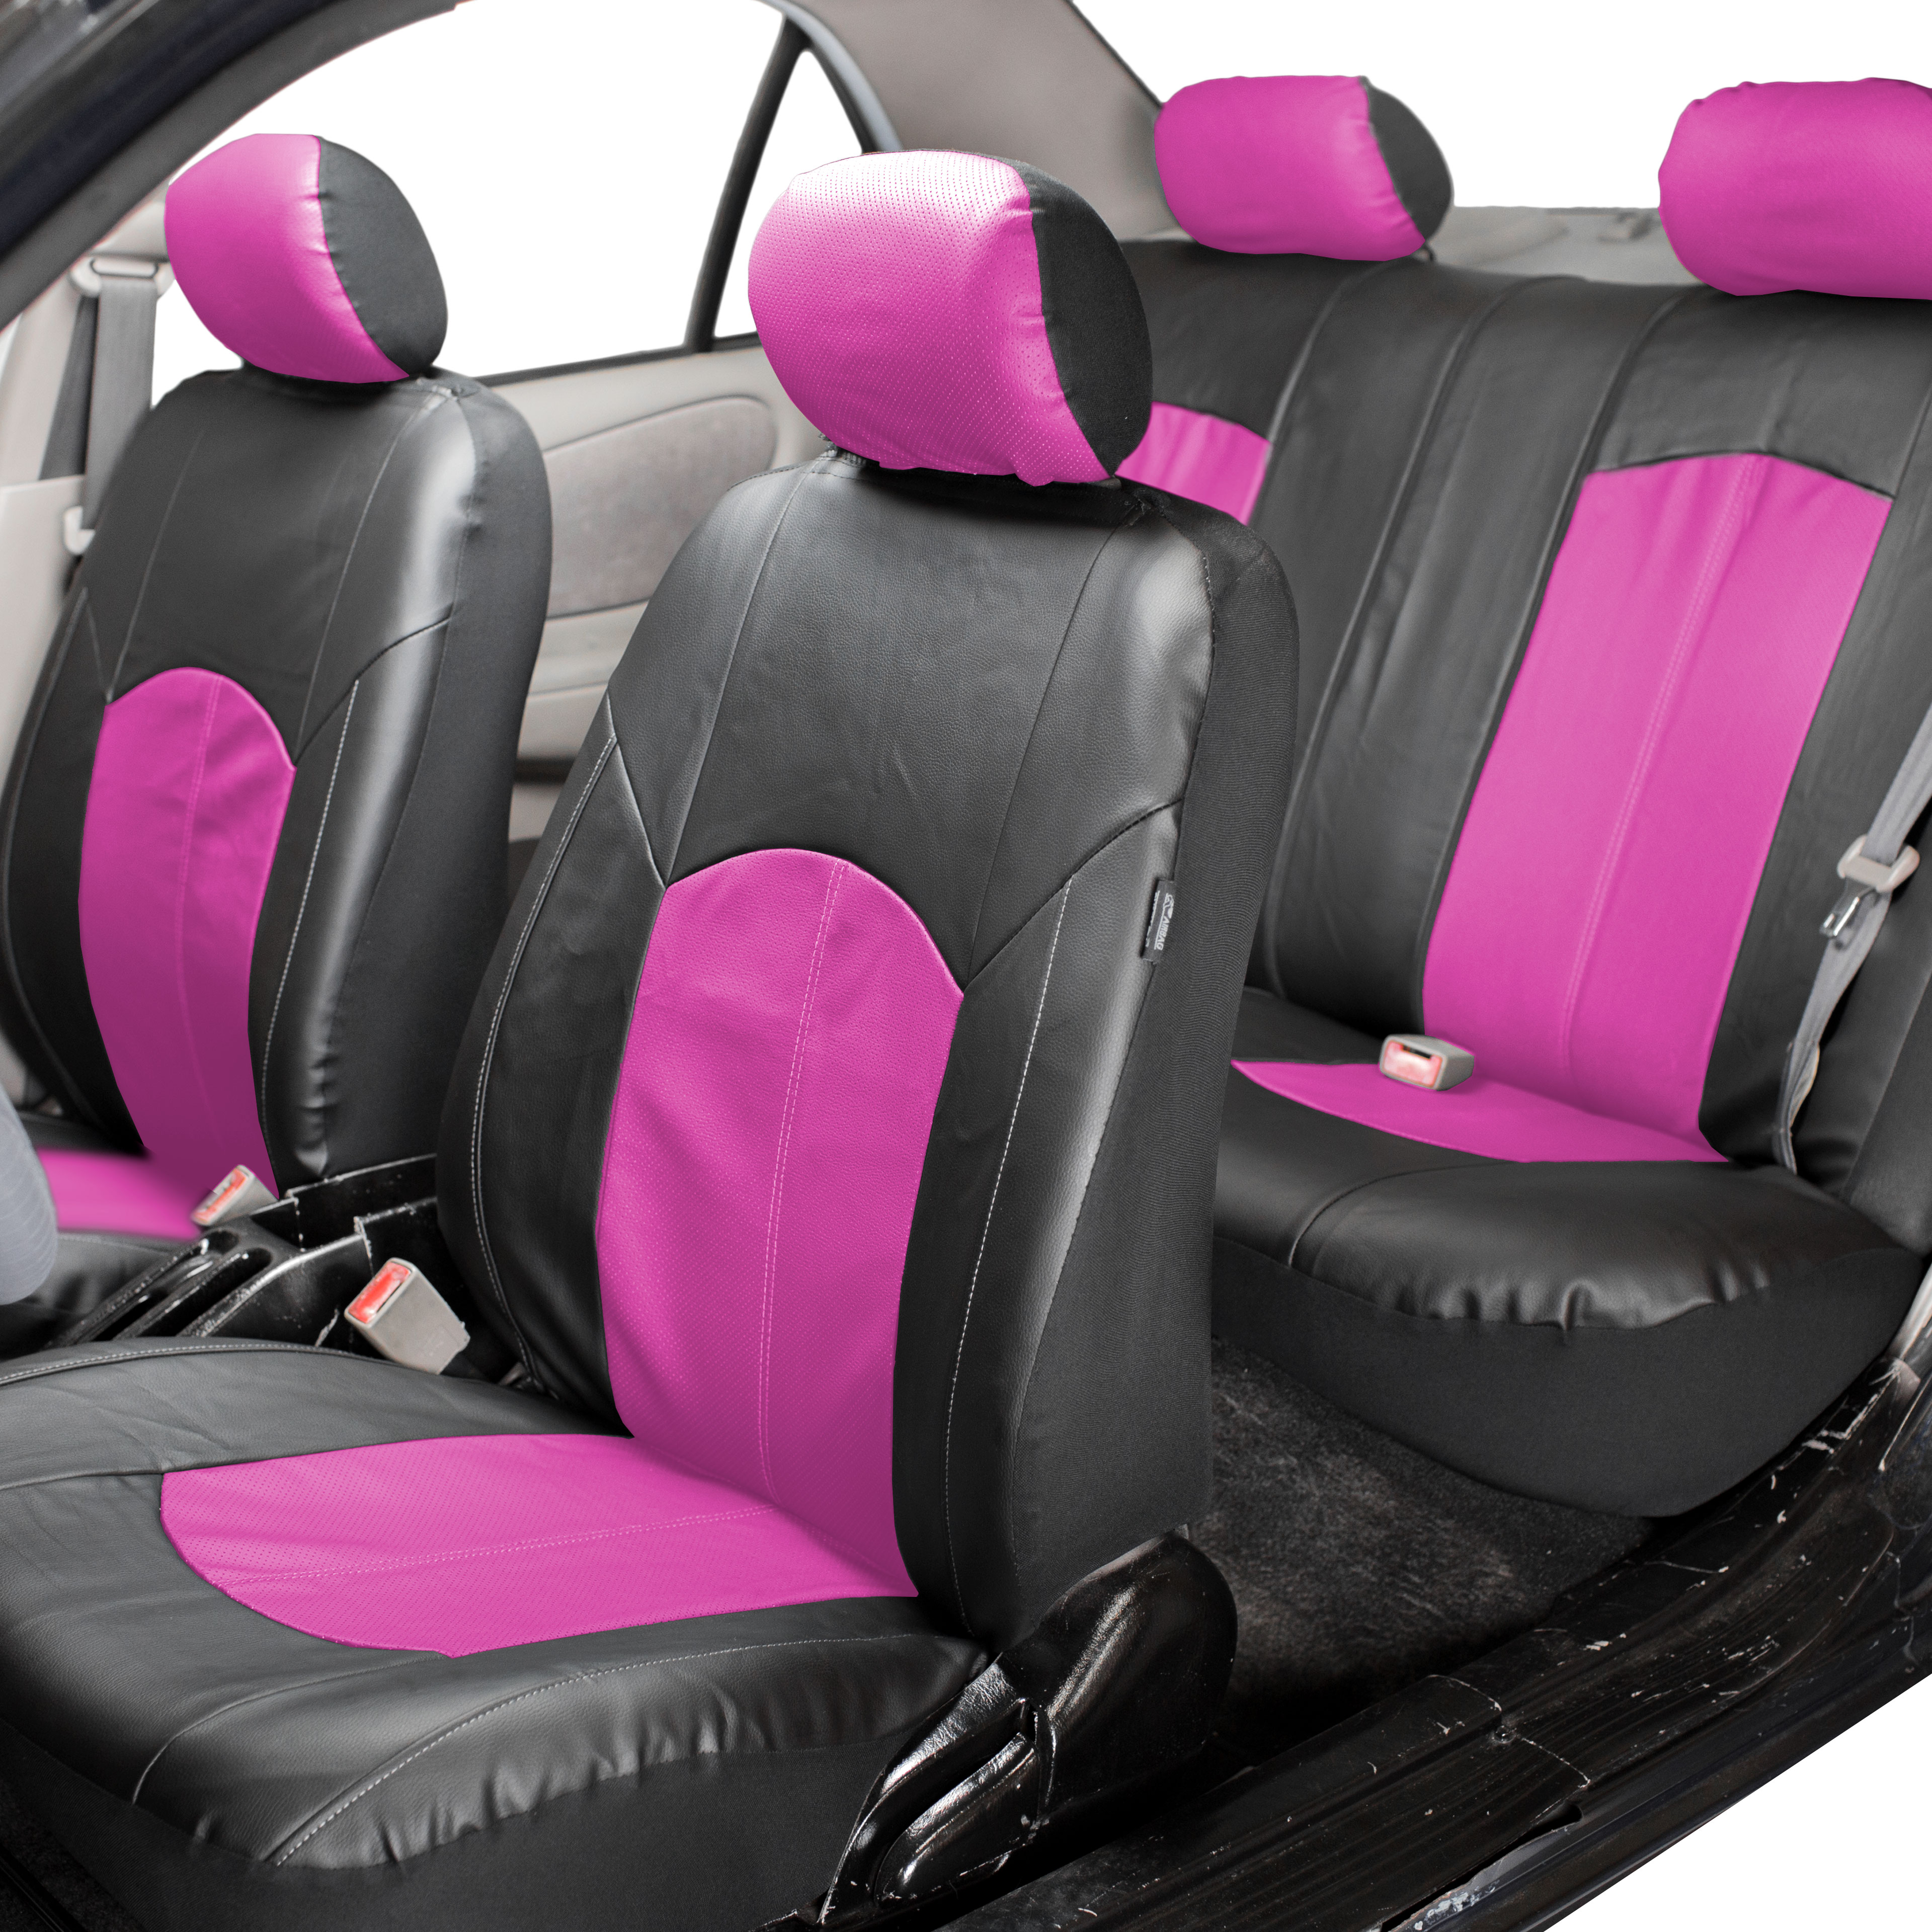 FH Group, Perforated Leather Seat Covers for Auto Car Sedan SUV Van, Full Set with 4 Headrest Covers, 8 Colors